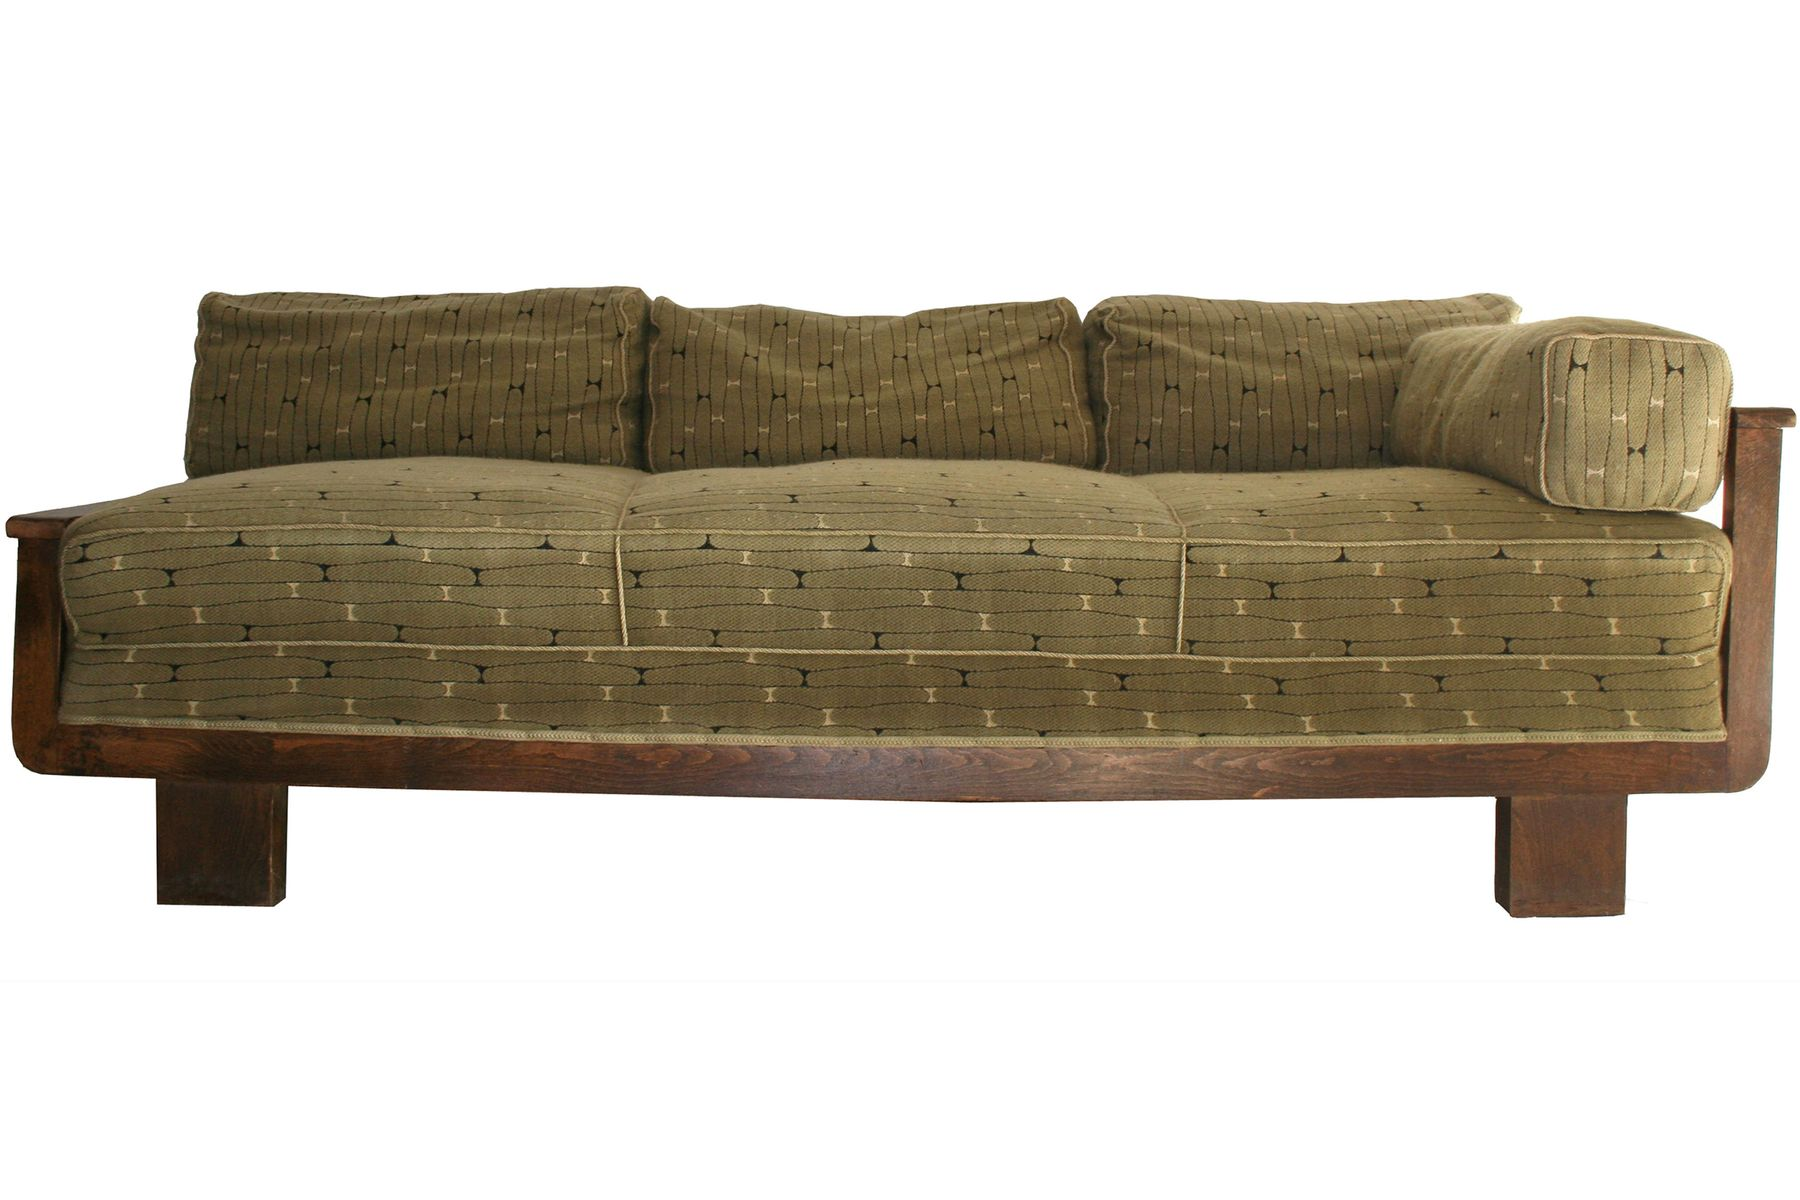 tschechisches mid century sofa aus dunklem holz 1950er bei pamono kaufen. Black Bedroom Furniture Sets. Home Design Ideas